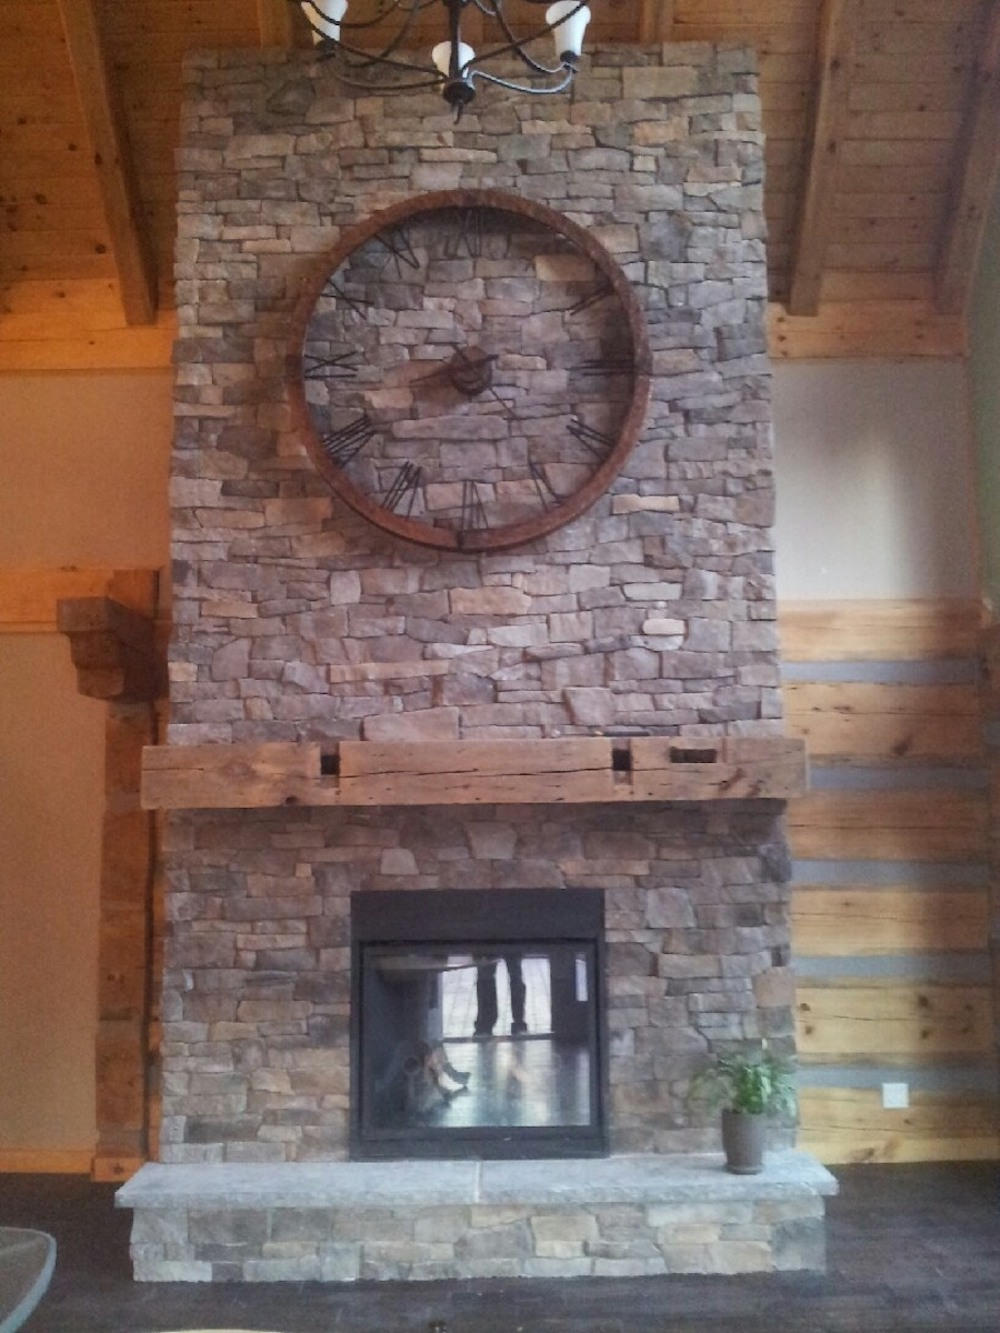 Reclaimed Barn Beam Fireplace Mantles Handcrafted By Century Home Renos Serving Southern Ontario Century Home Renos